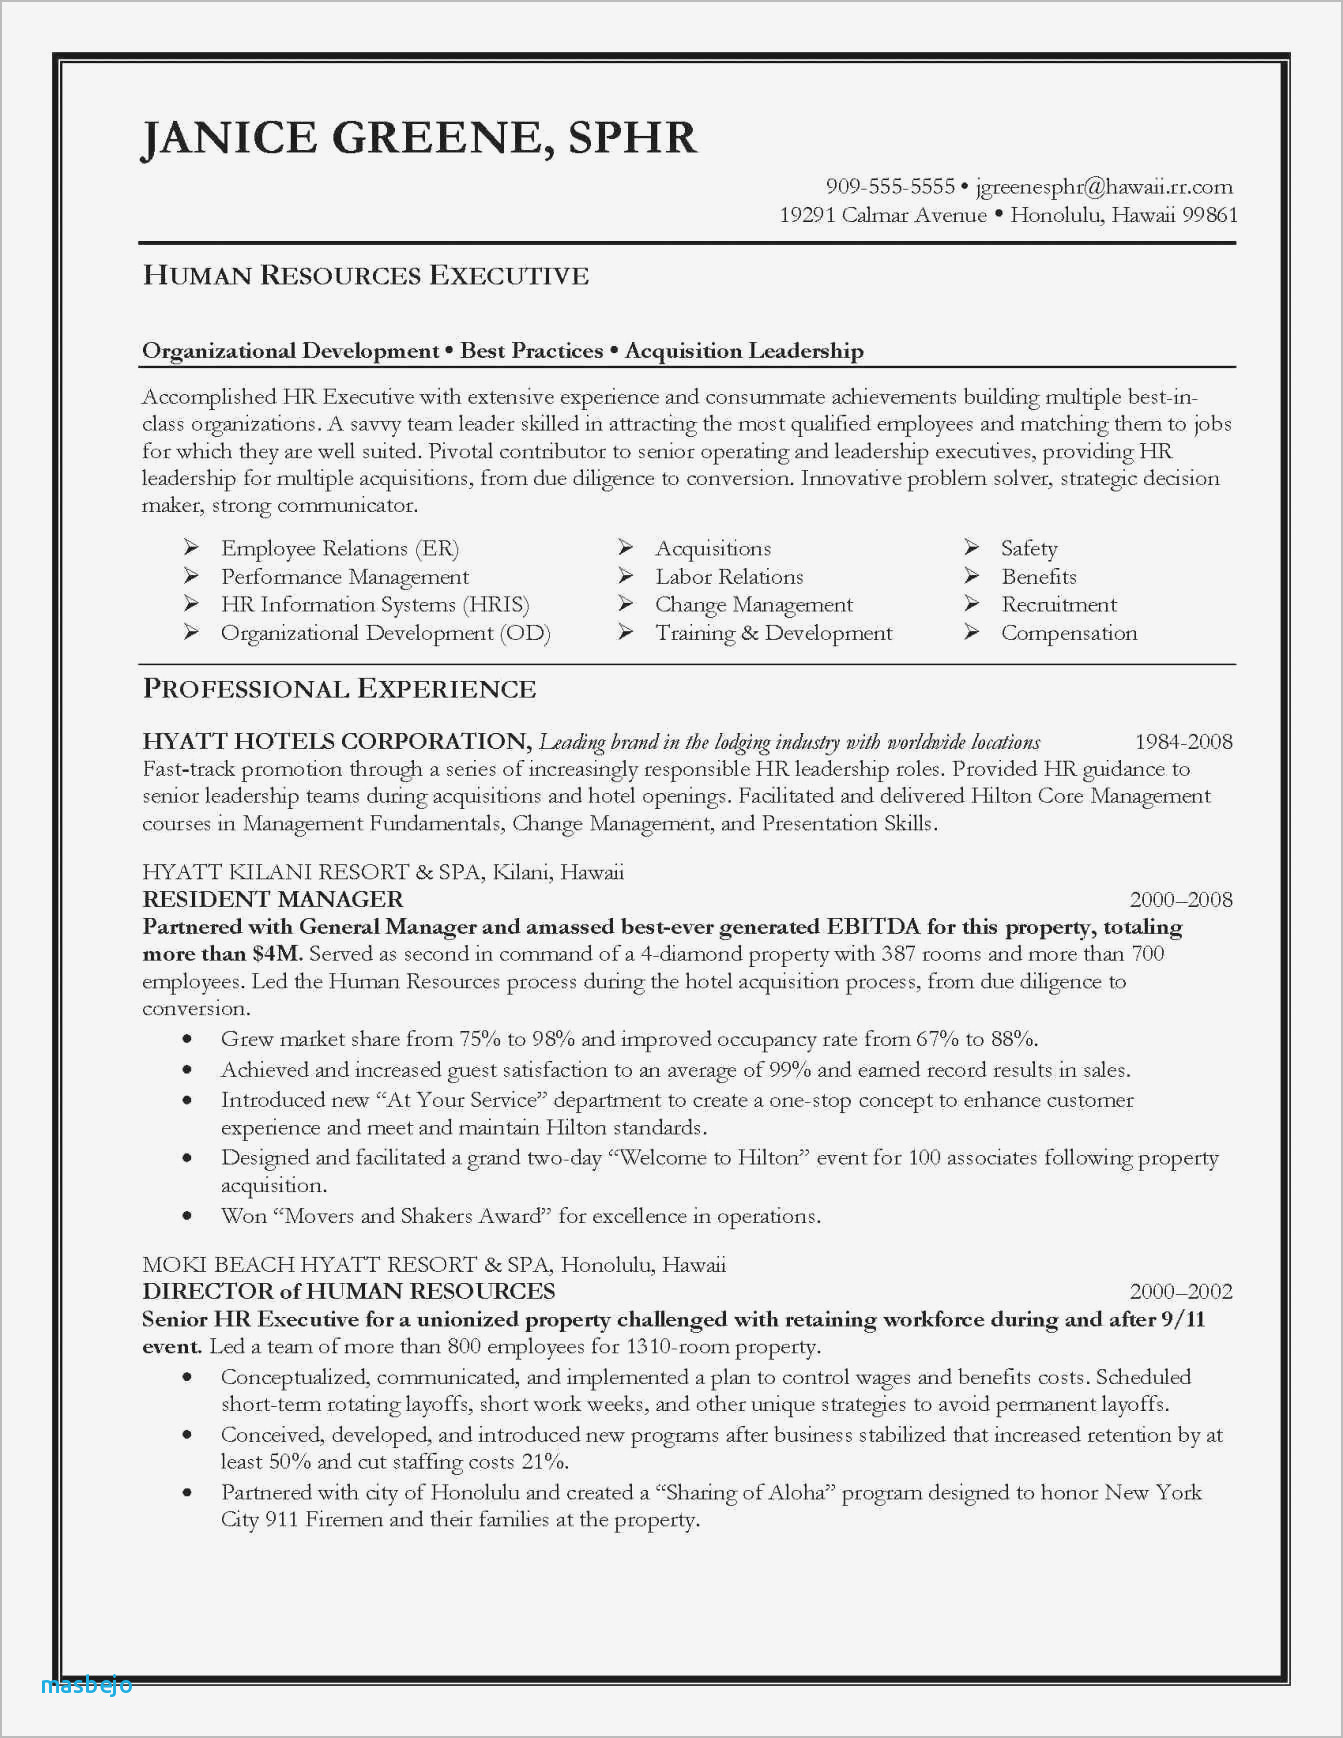 Landscaping Resume Examples - Landscaping Resume Examples General Resume Sample Elegant